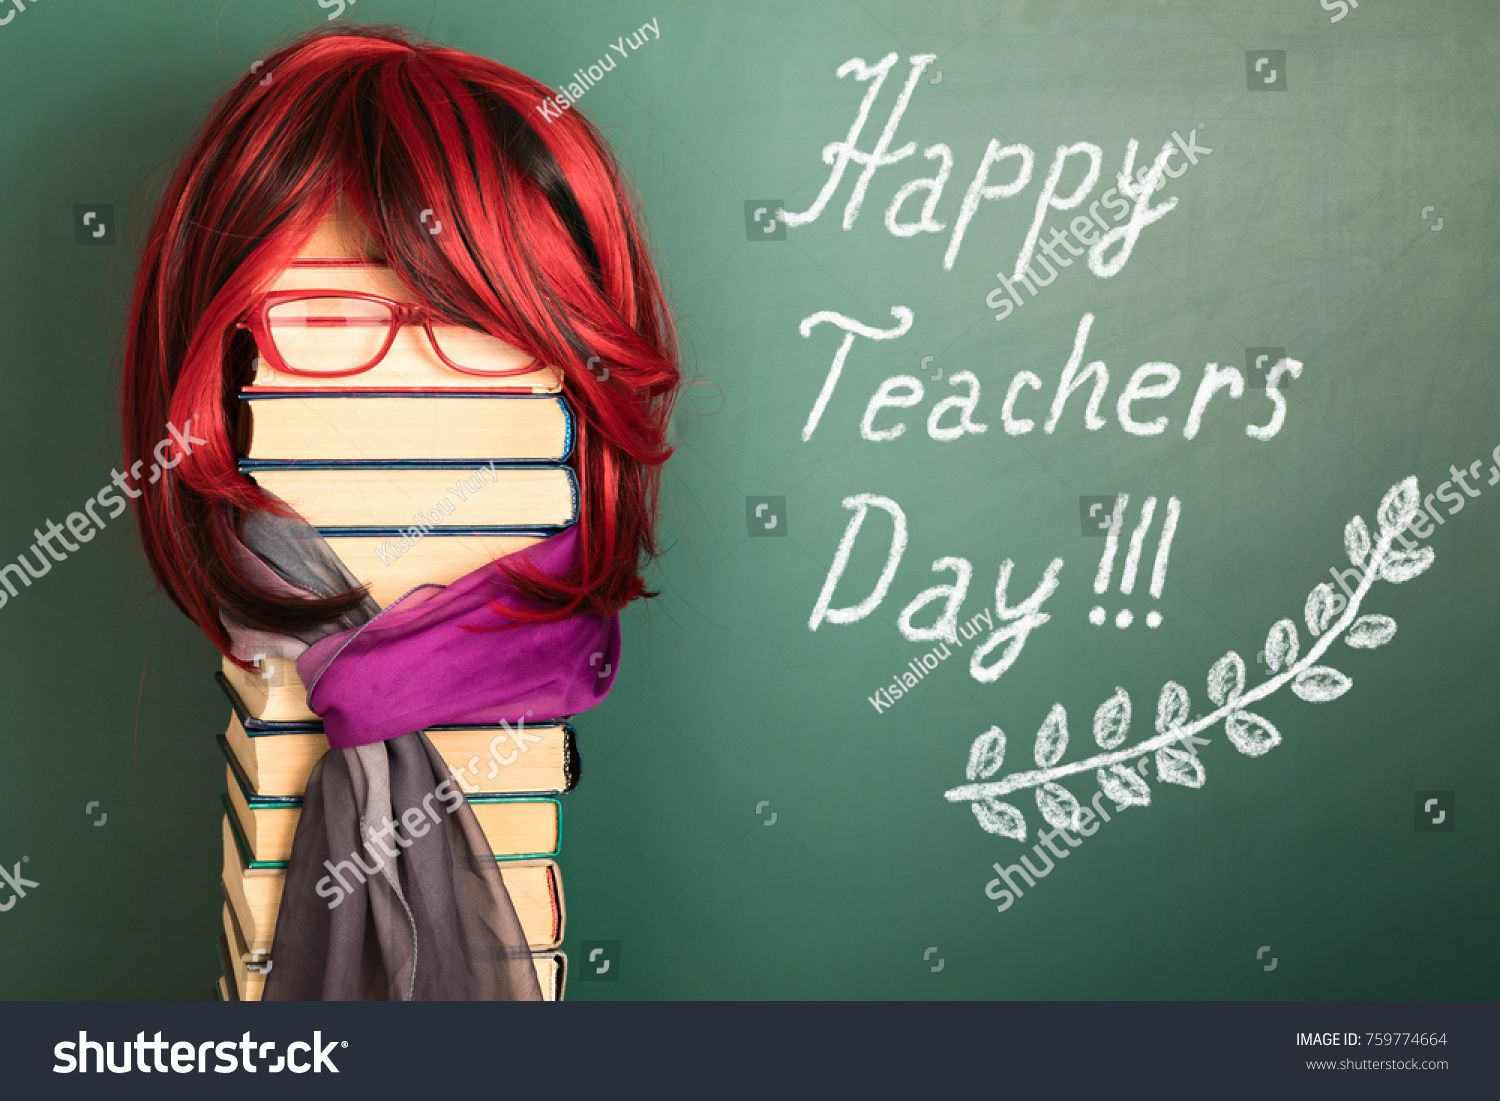 Happy Teachers Day Funny Education Concept With Beautiful Teacher Girl With Luxurious Red Hair Ad Affi Beautiful Teacher Education Humor Happy Teachers Day